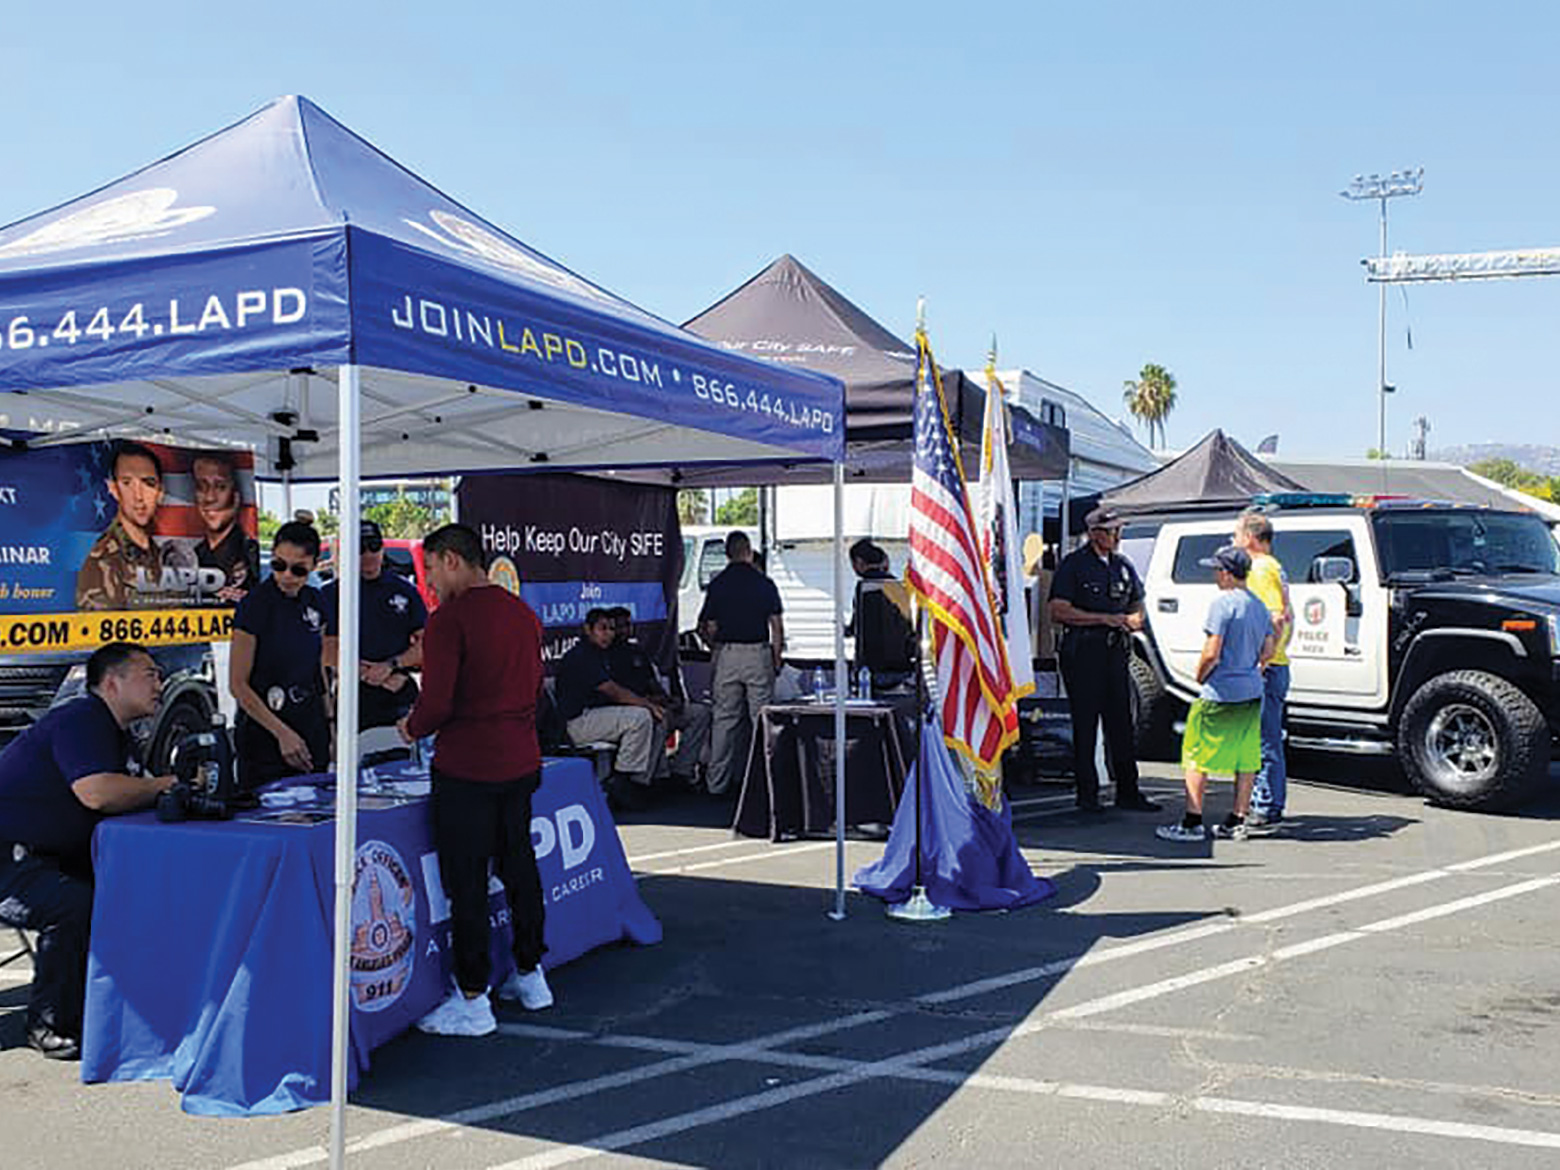 lapd-at-fleet-week-reserves-are-the-hidden-blue-angels-7